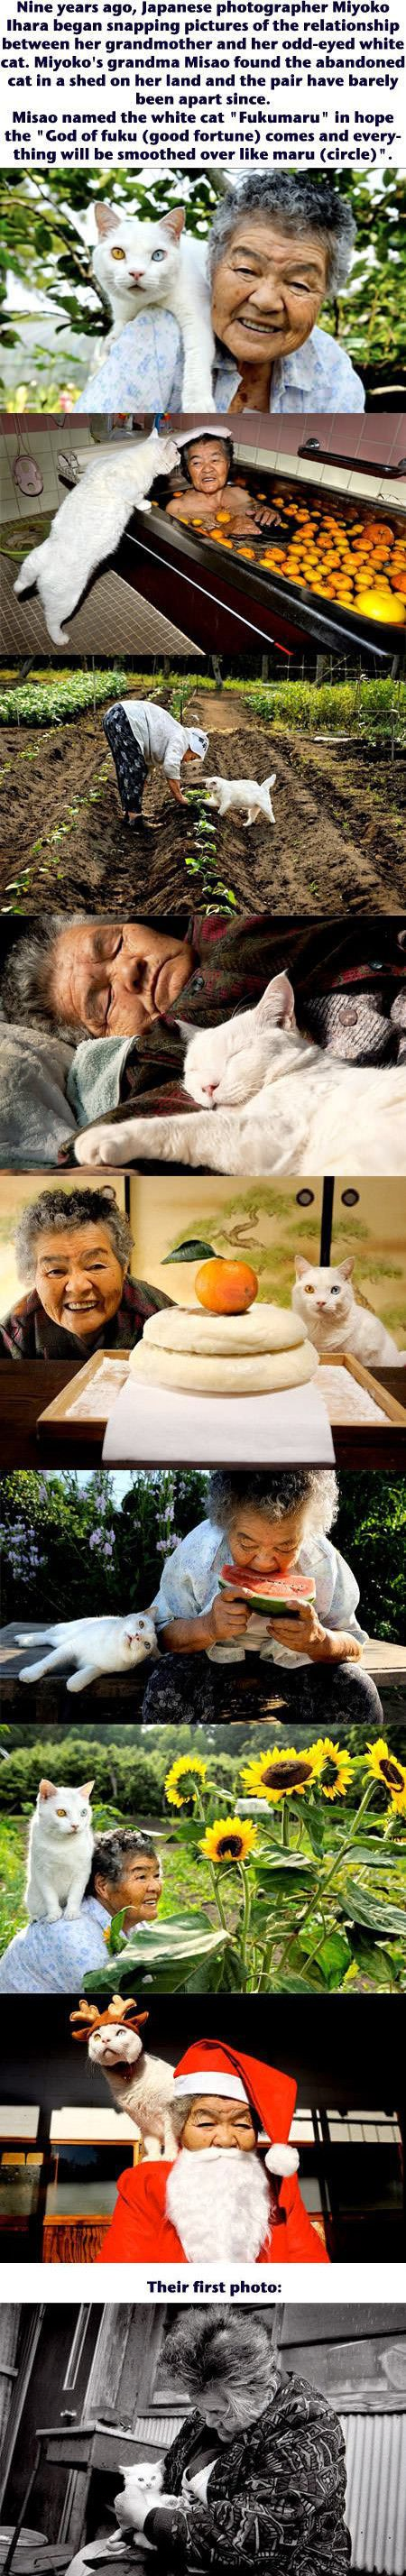 Geeky photographer captures the beautiful relationship between her grandmother and a cat.